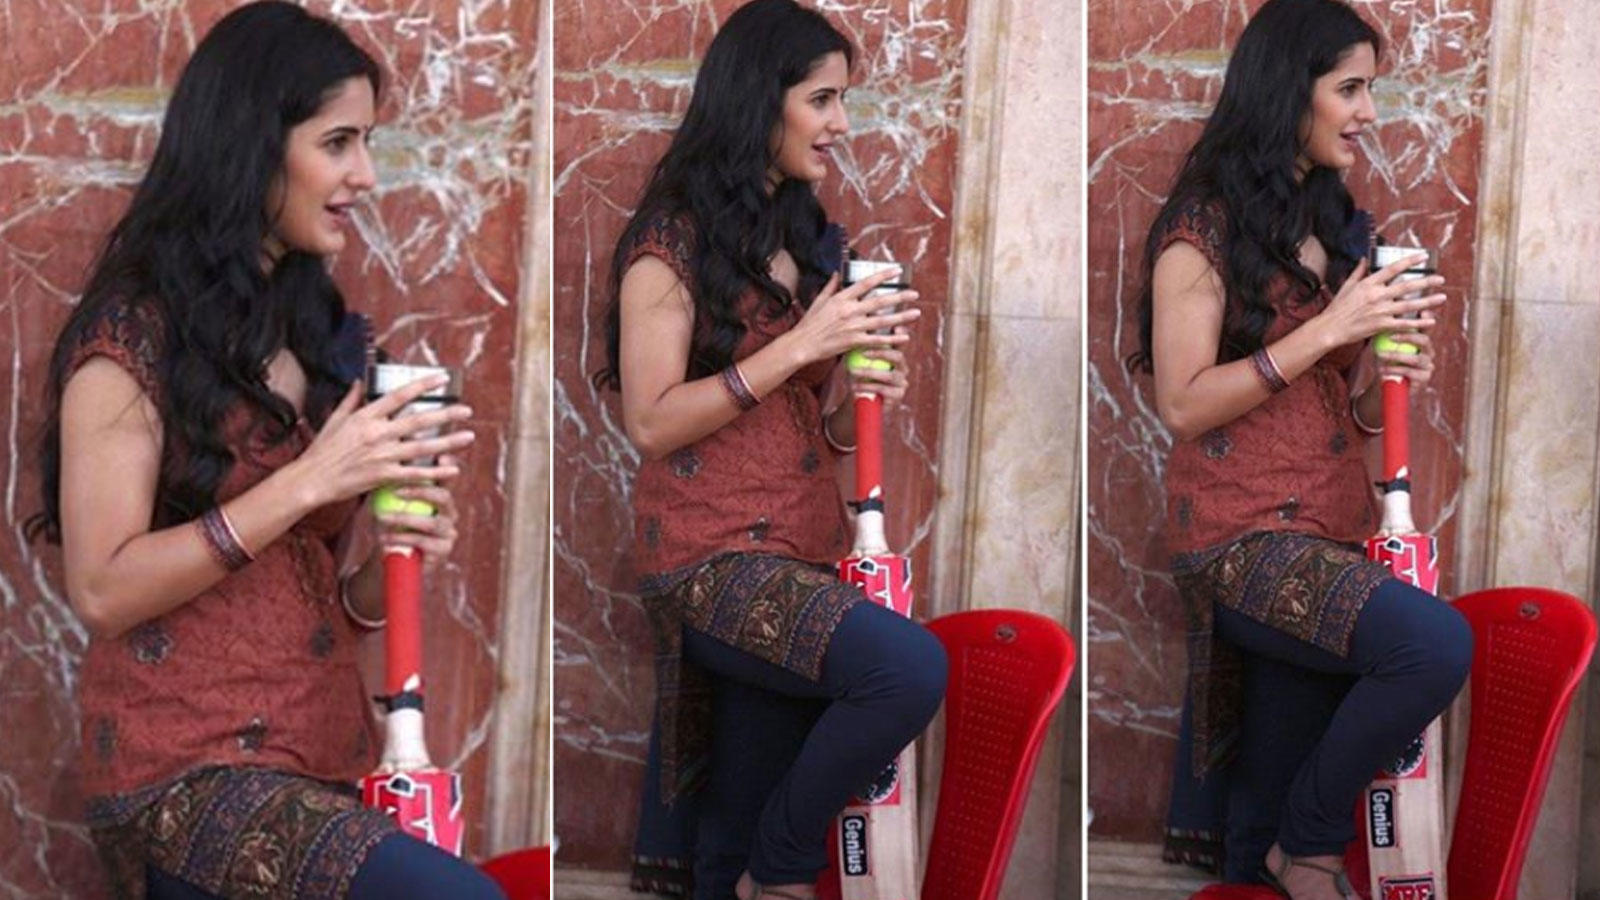 katrina-kaif-misses-playing-cricket-shares-throwback-pic